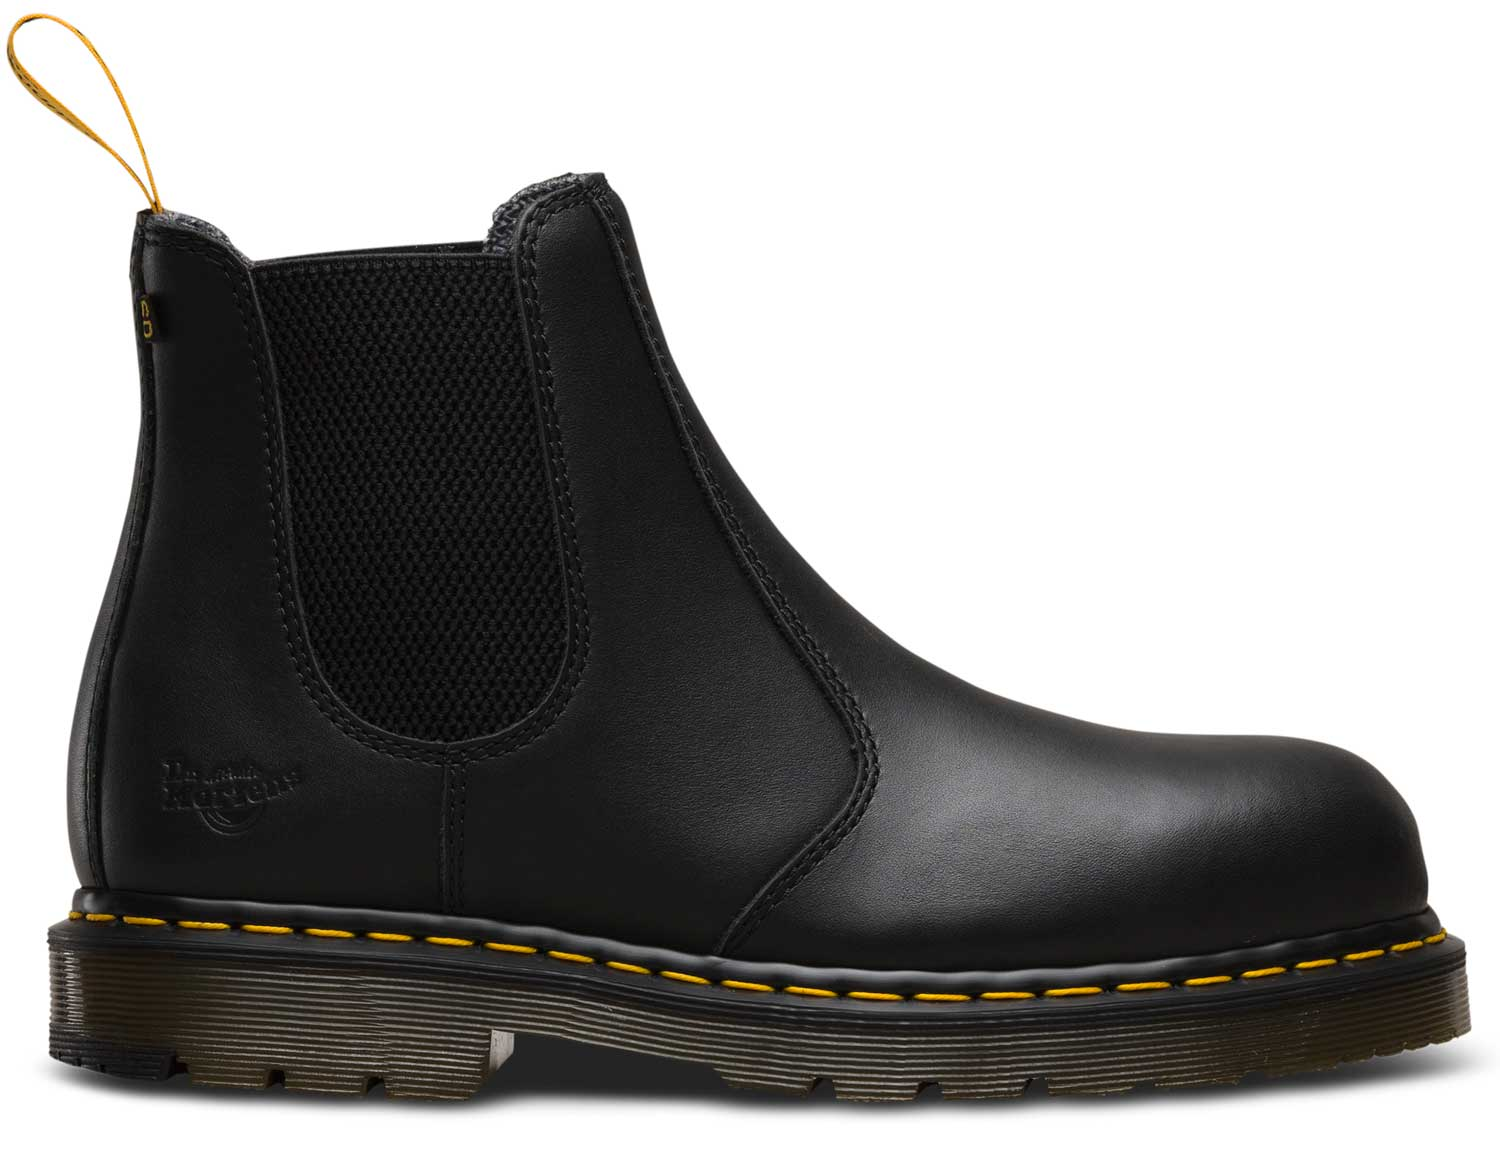 Safgard Work Boots Safety Shoes Steel Toe Waterproof Safety Footwear Bates Boots Ansi Astm